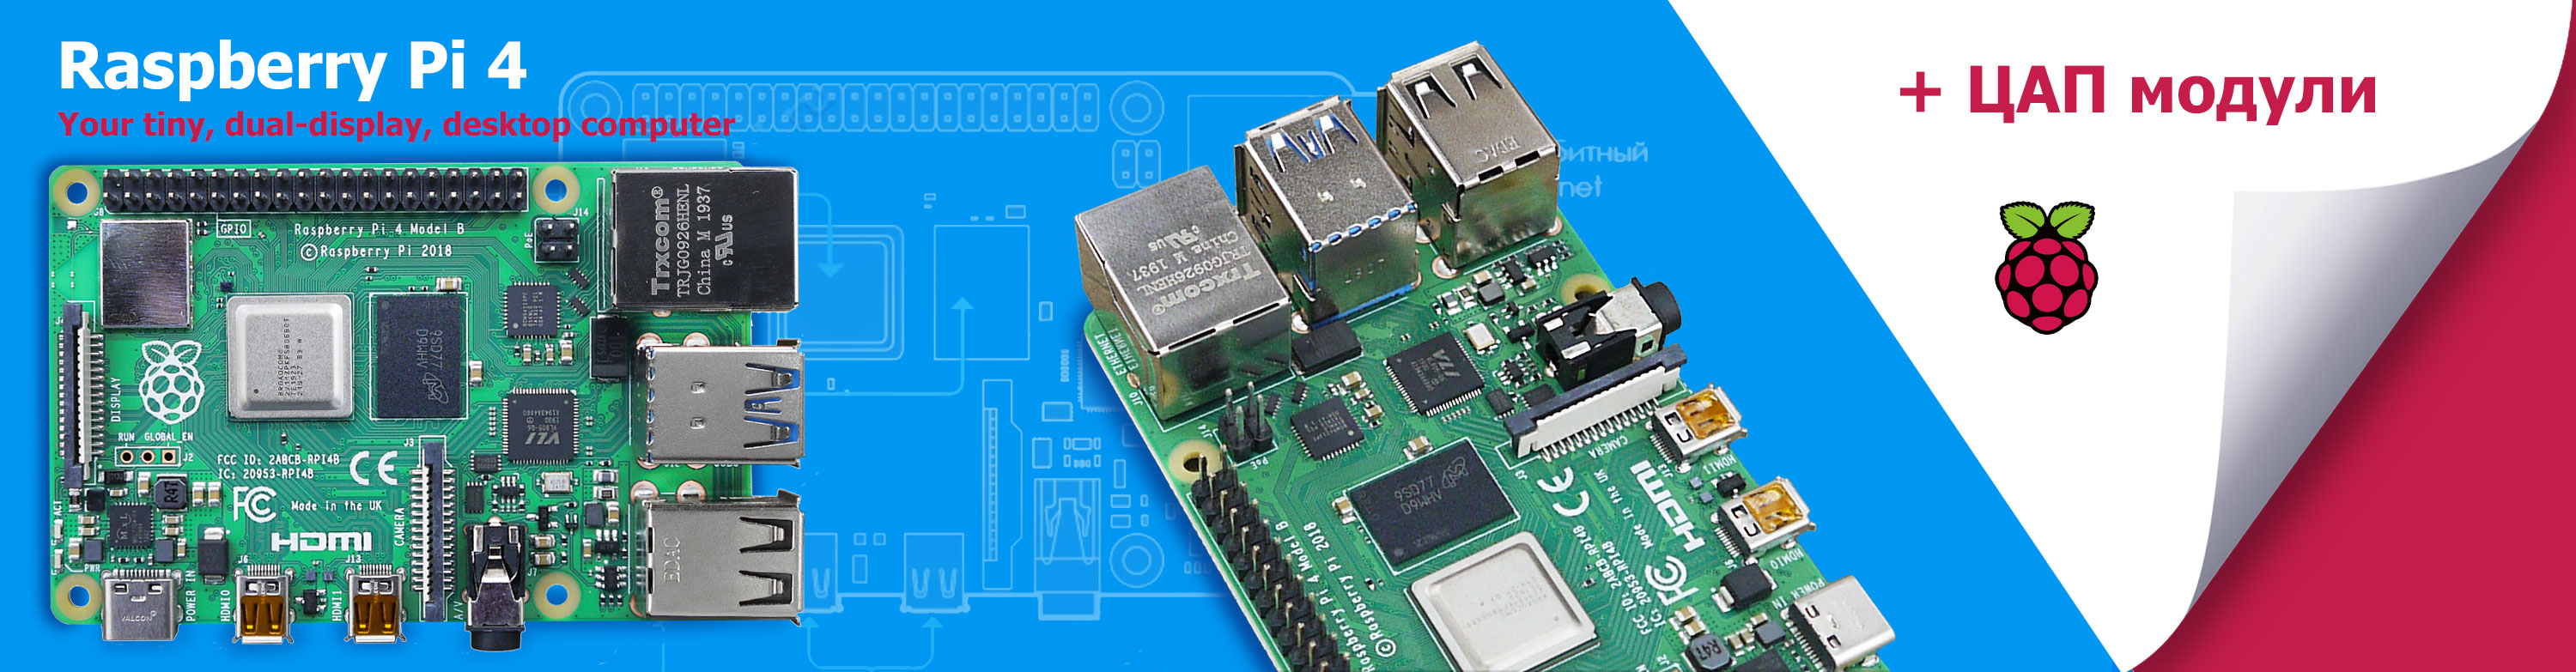 Raspberry PI4 2GB